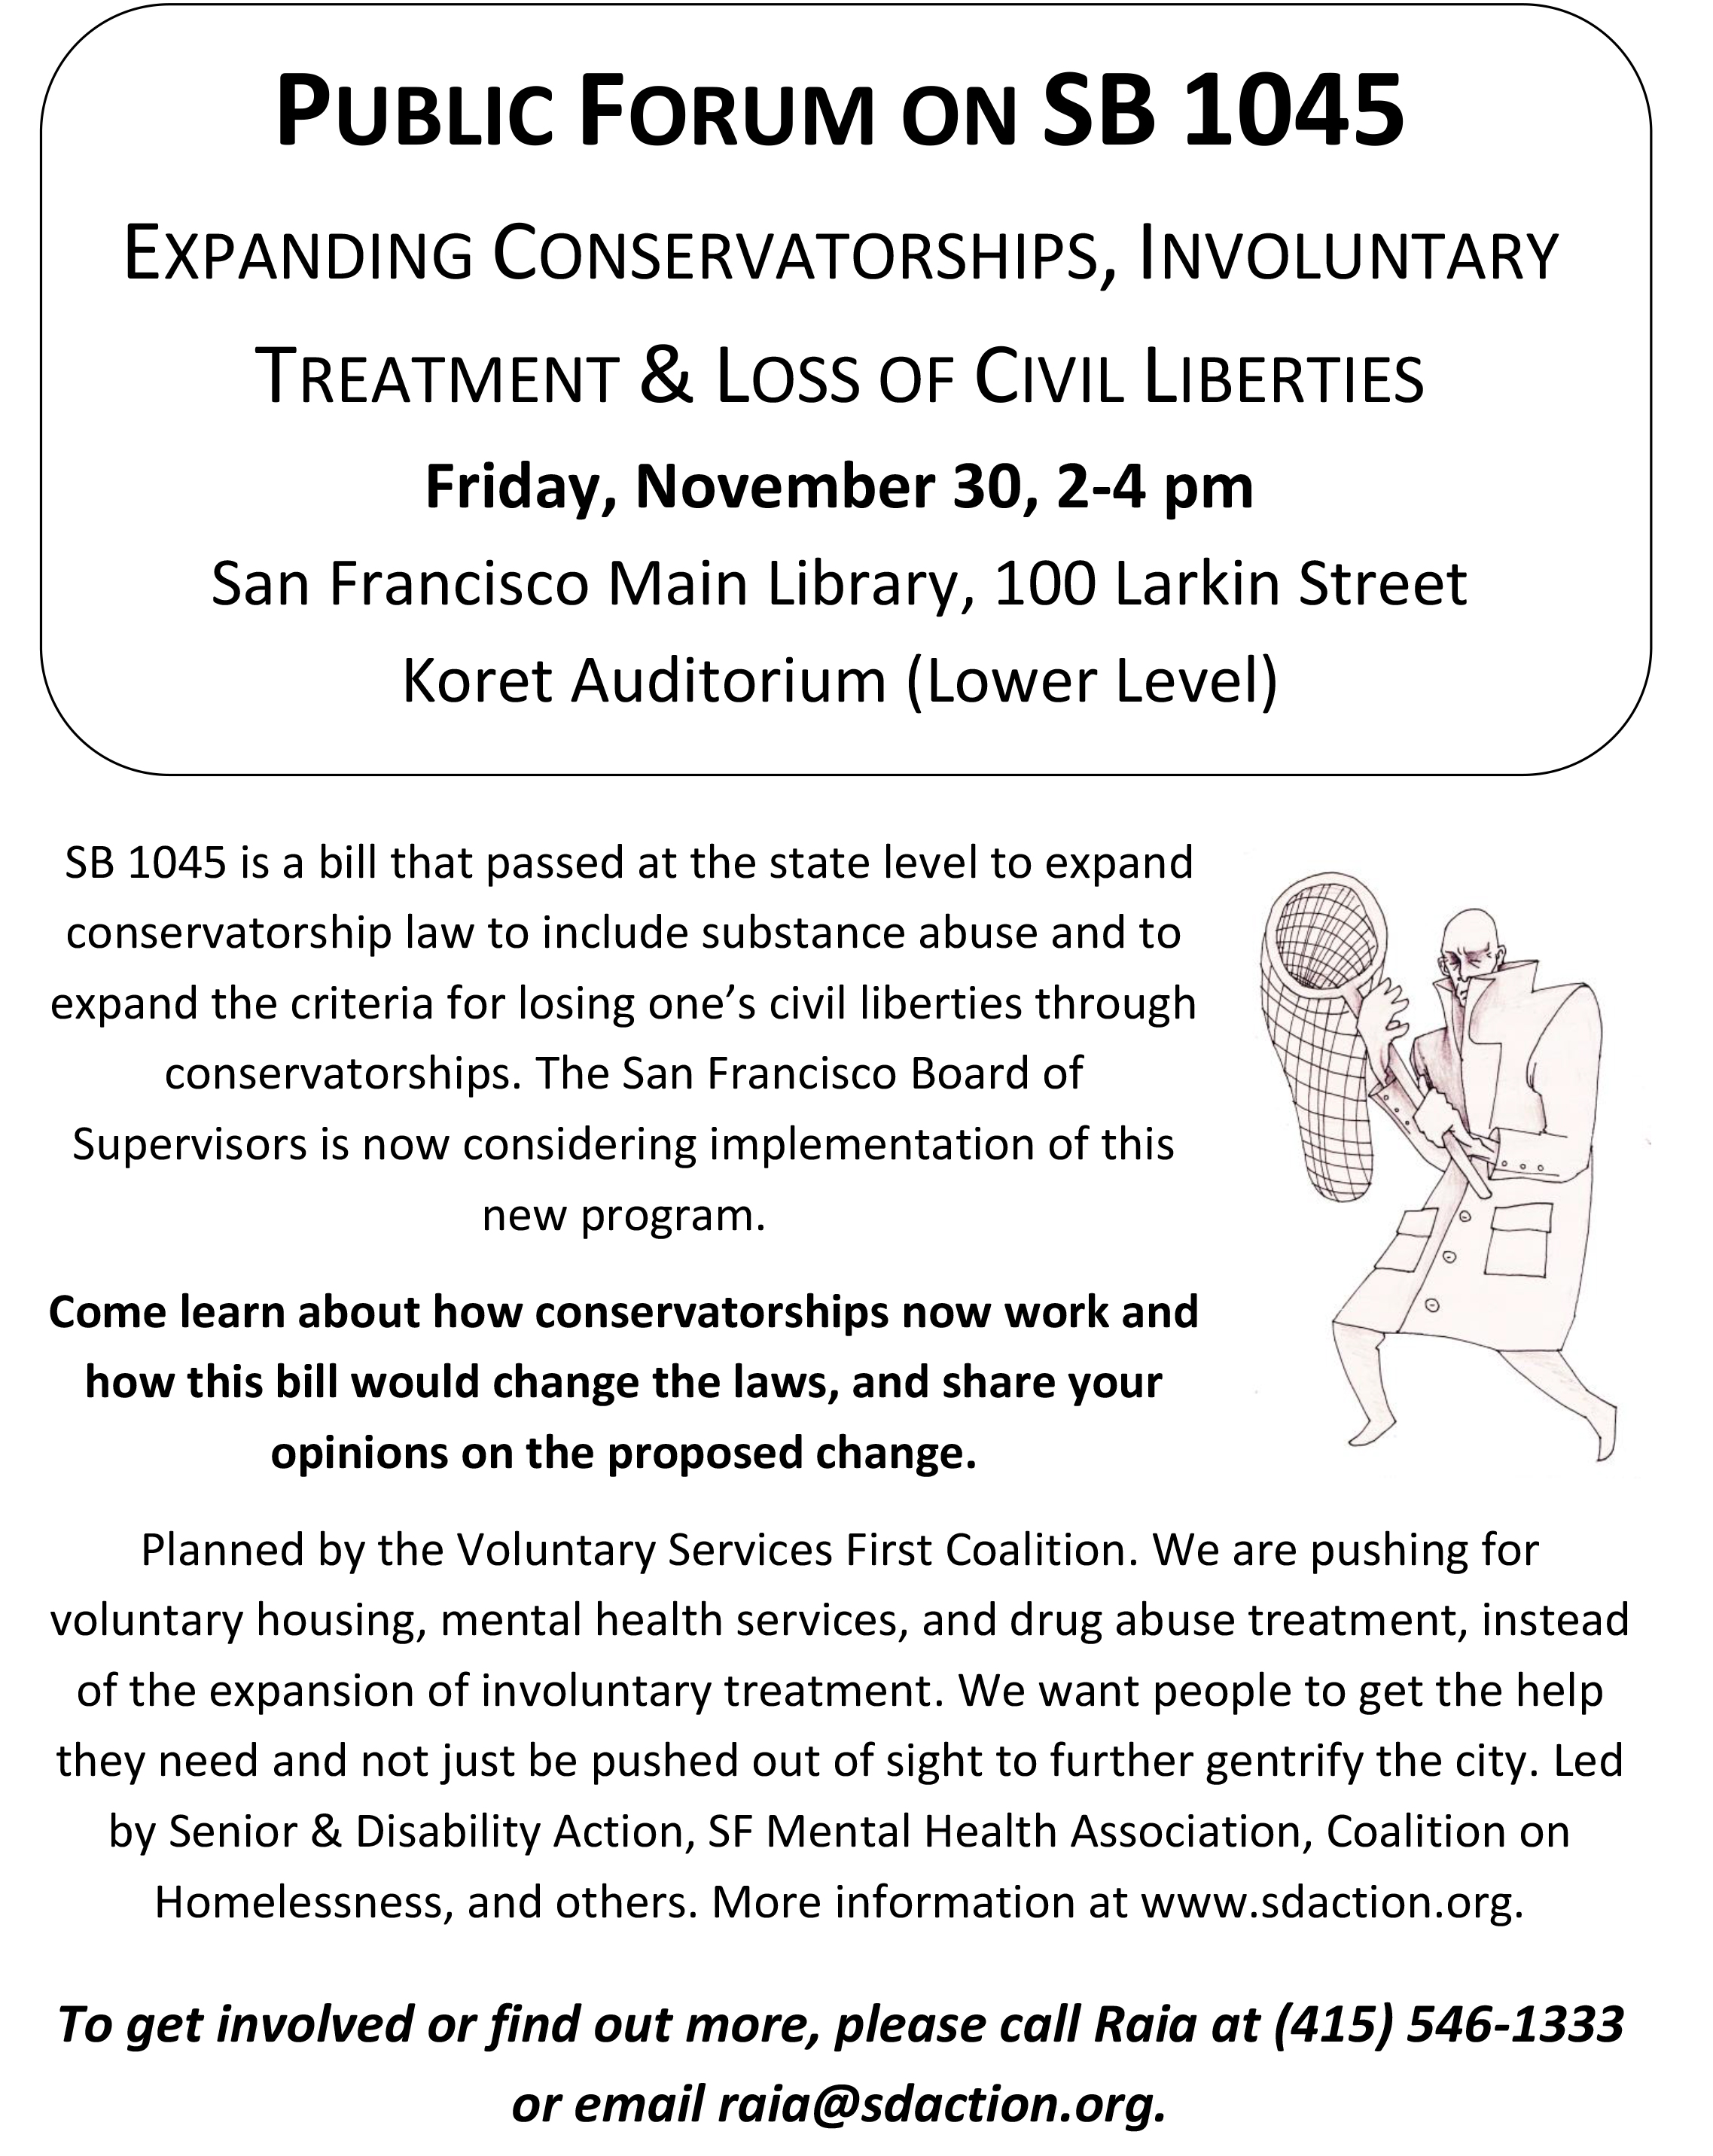 WRAP | Public Forum on SB 1045 Expanding Conservatorships